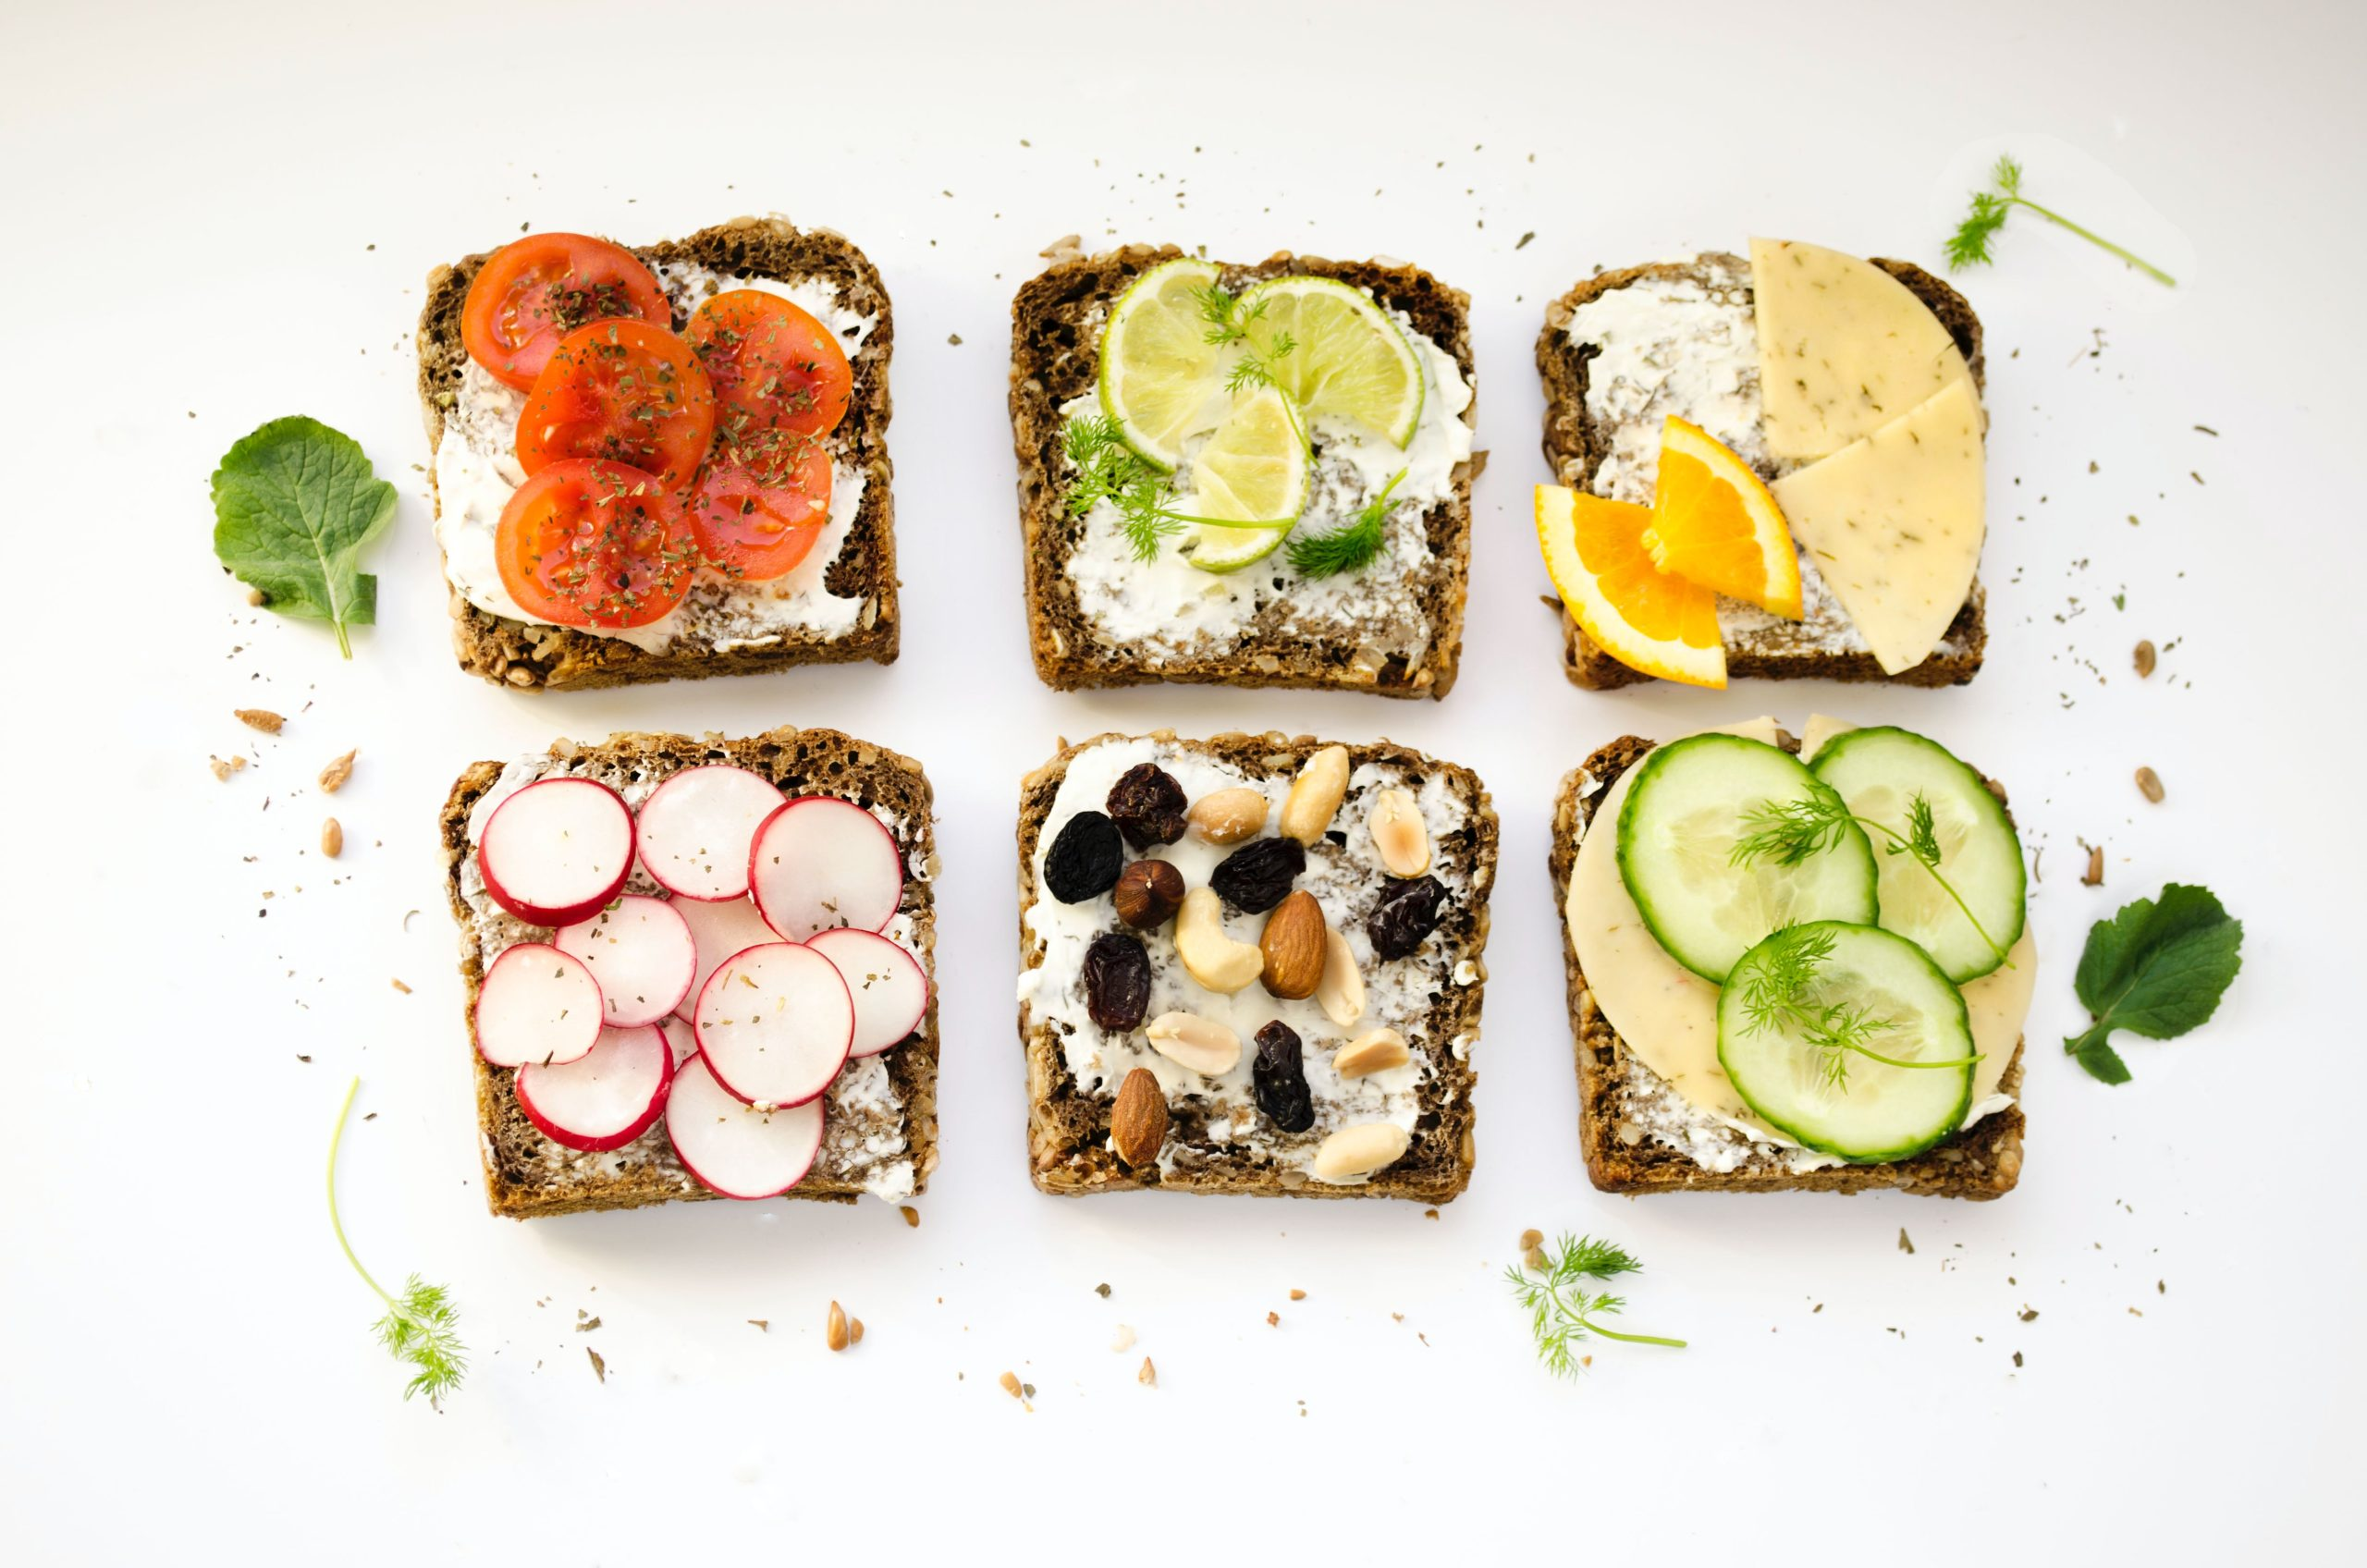 A Variety of Toasts with Fruits